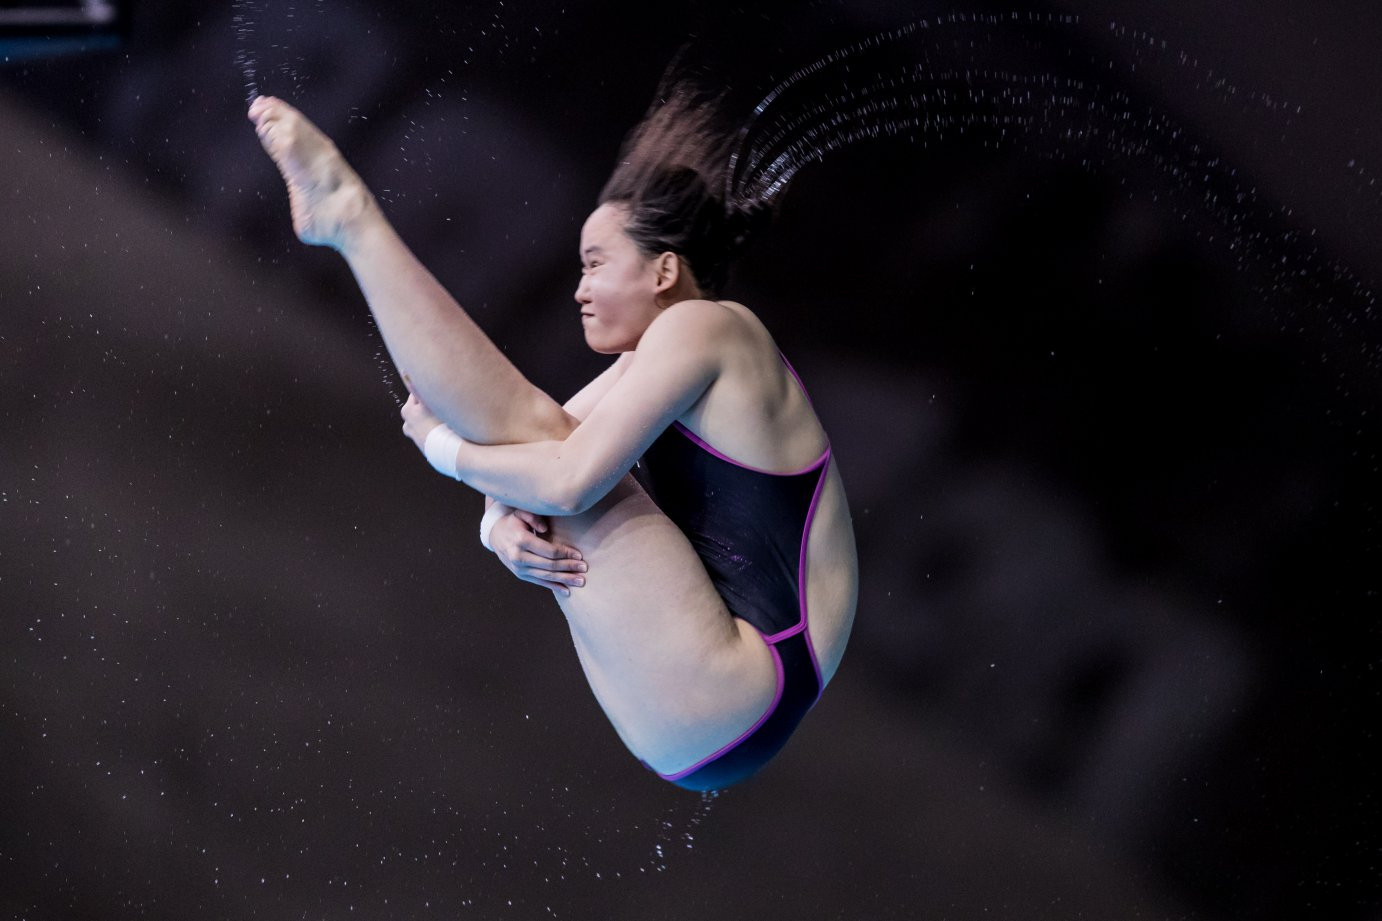 Ren Qian won gold in the women's 10m event at the FINA Diving World Series in Montreal ©Getty Images